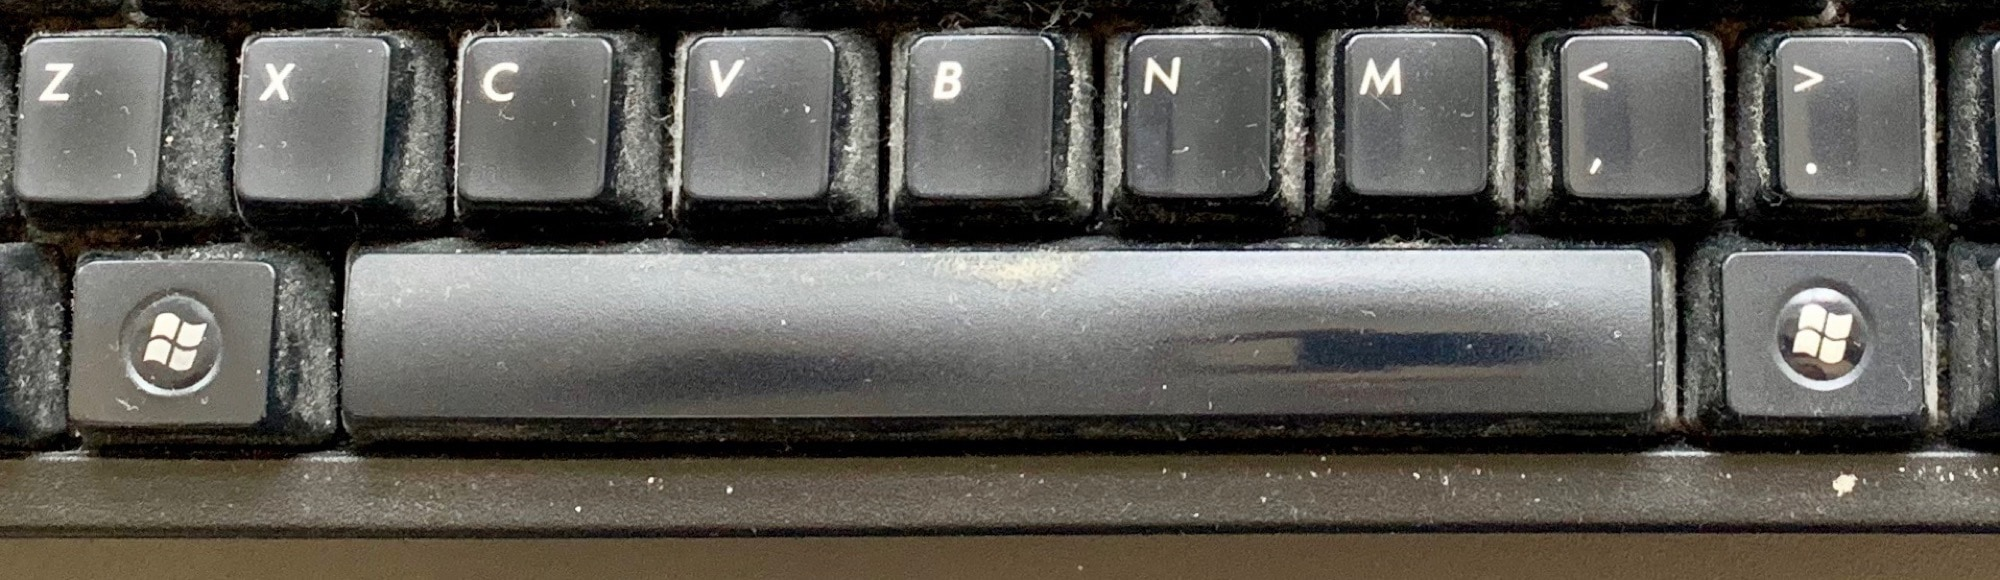 filthy spacebar zoom push to talk mute